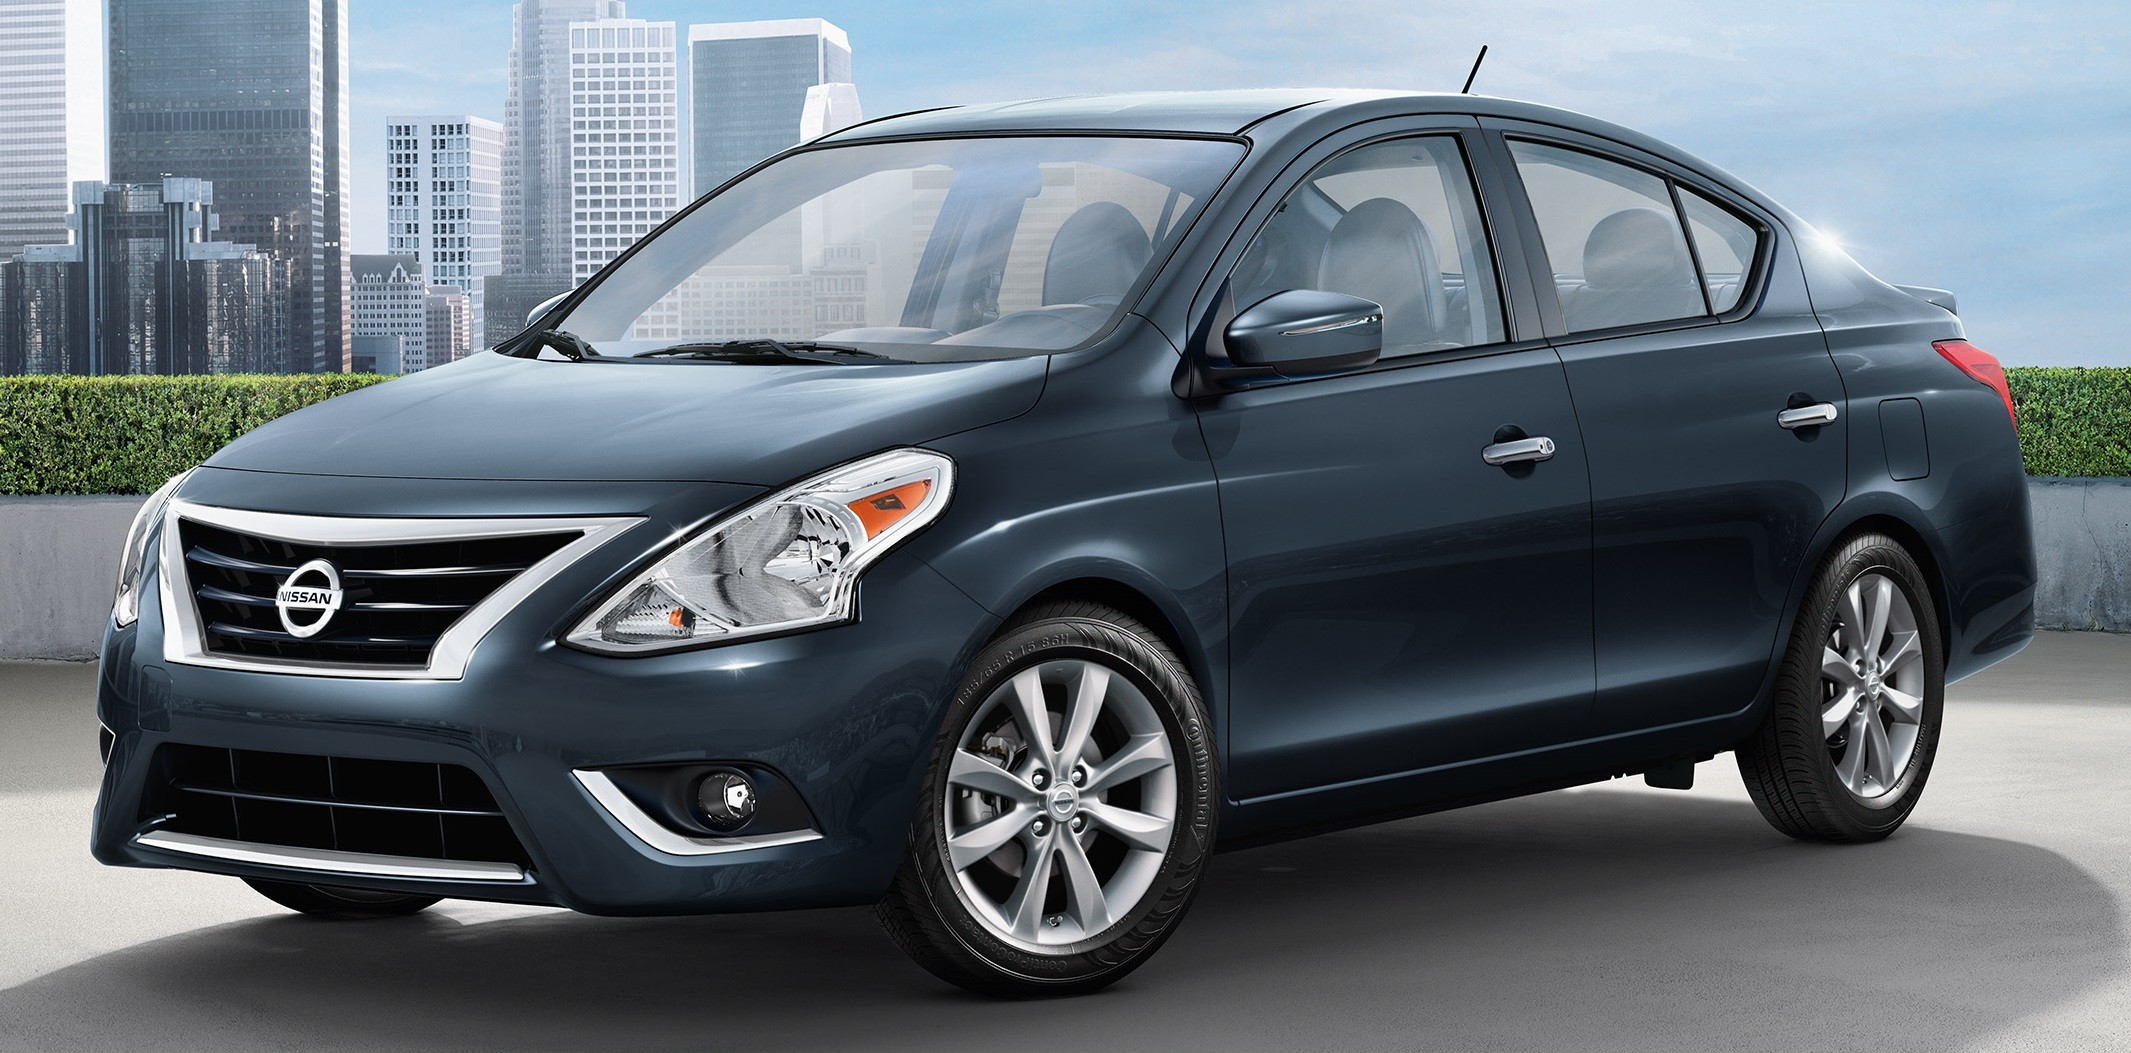 used r in sv for versa usage en francois autos es auto nissan le g st haut townships sale eastern inventory ca inc usag